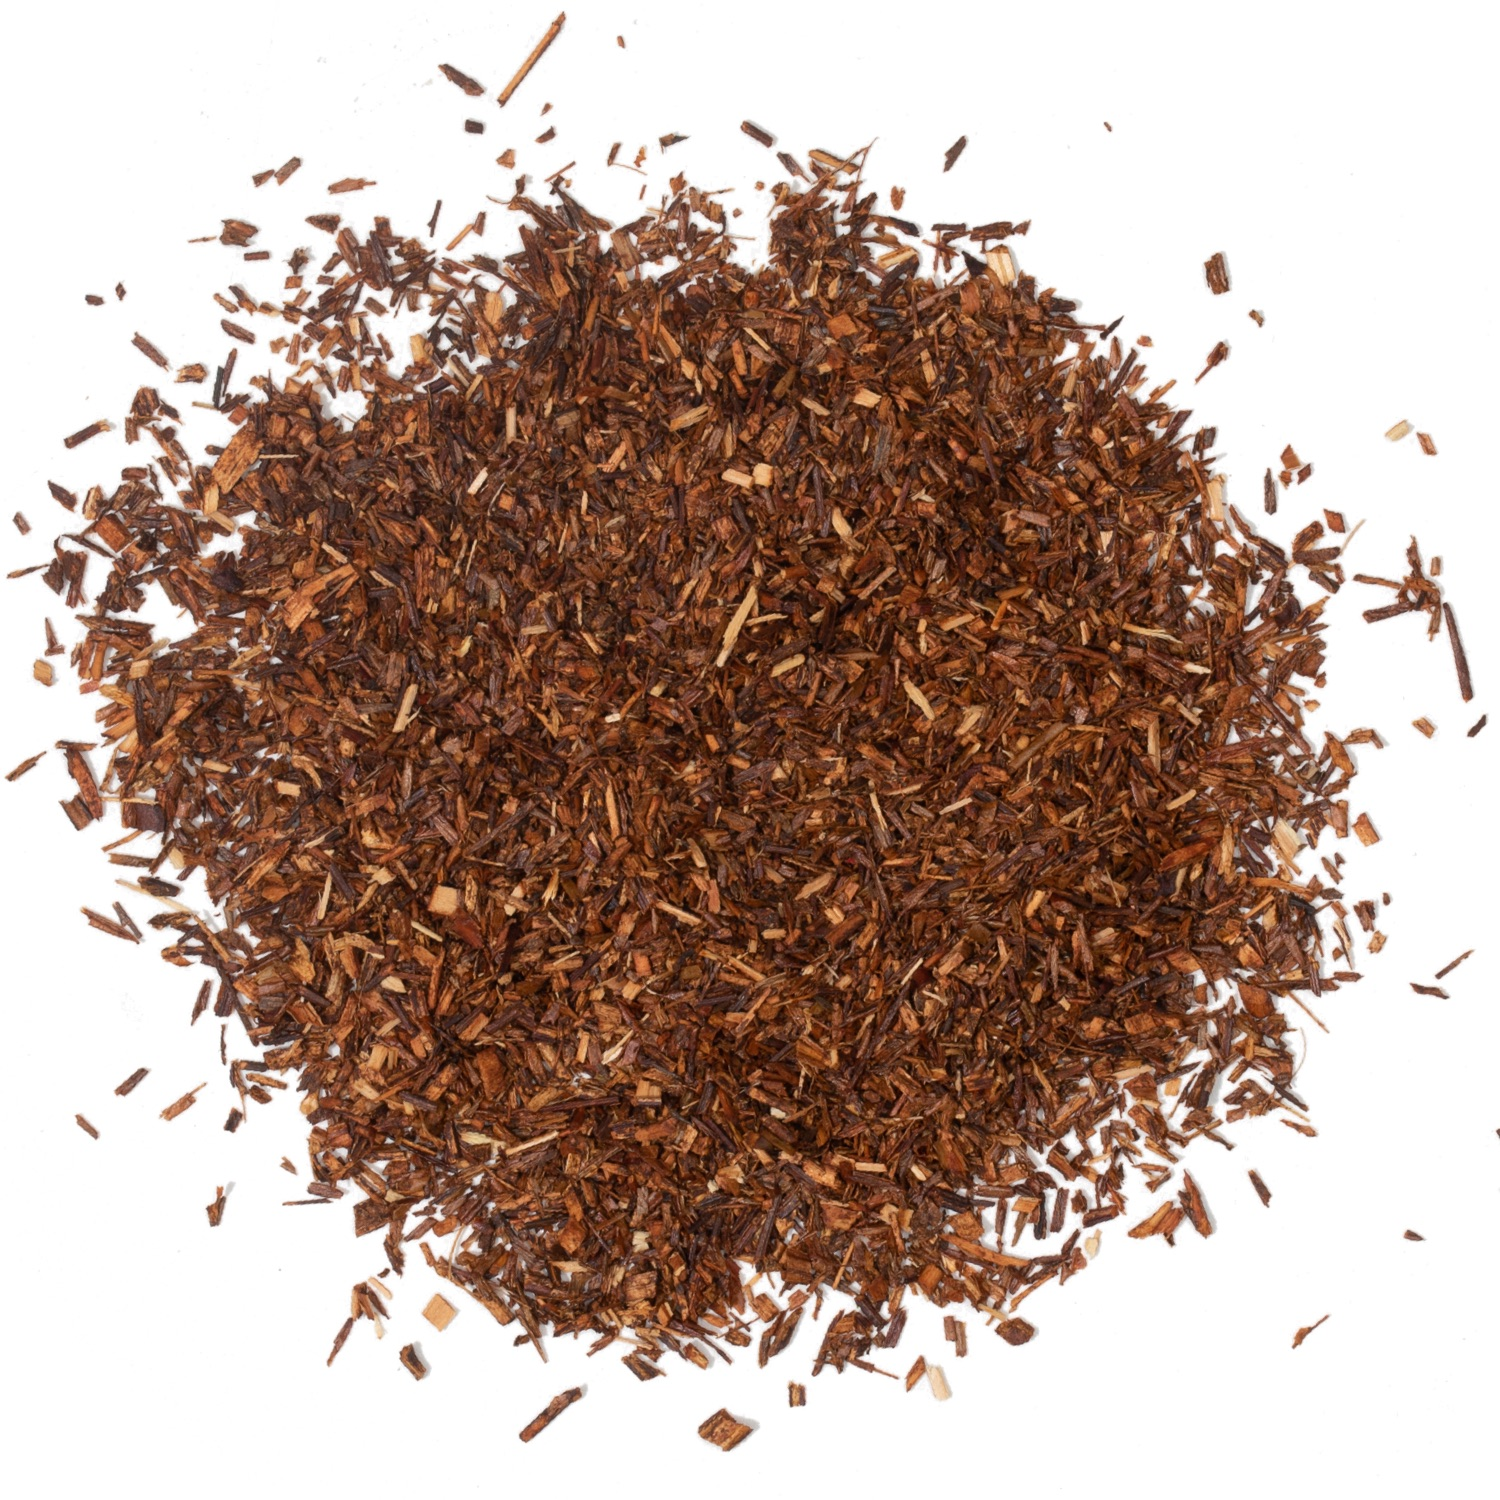 Splash of loose leaf rooibos tea.